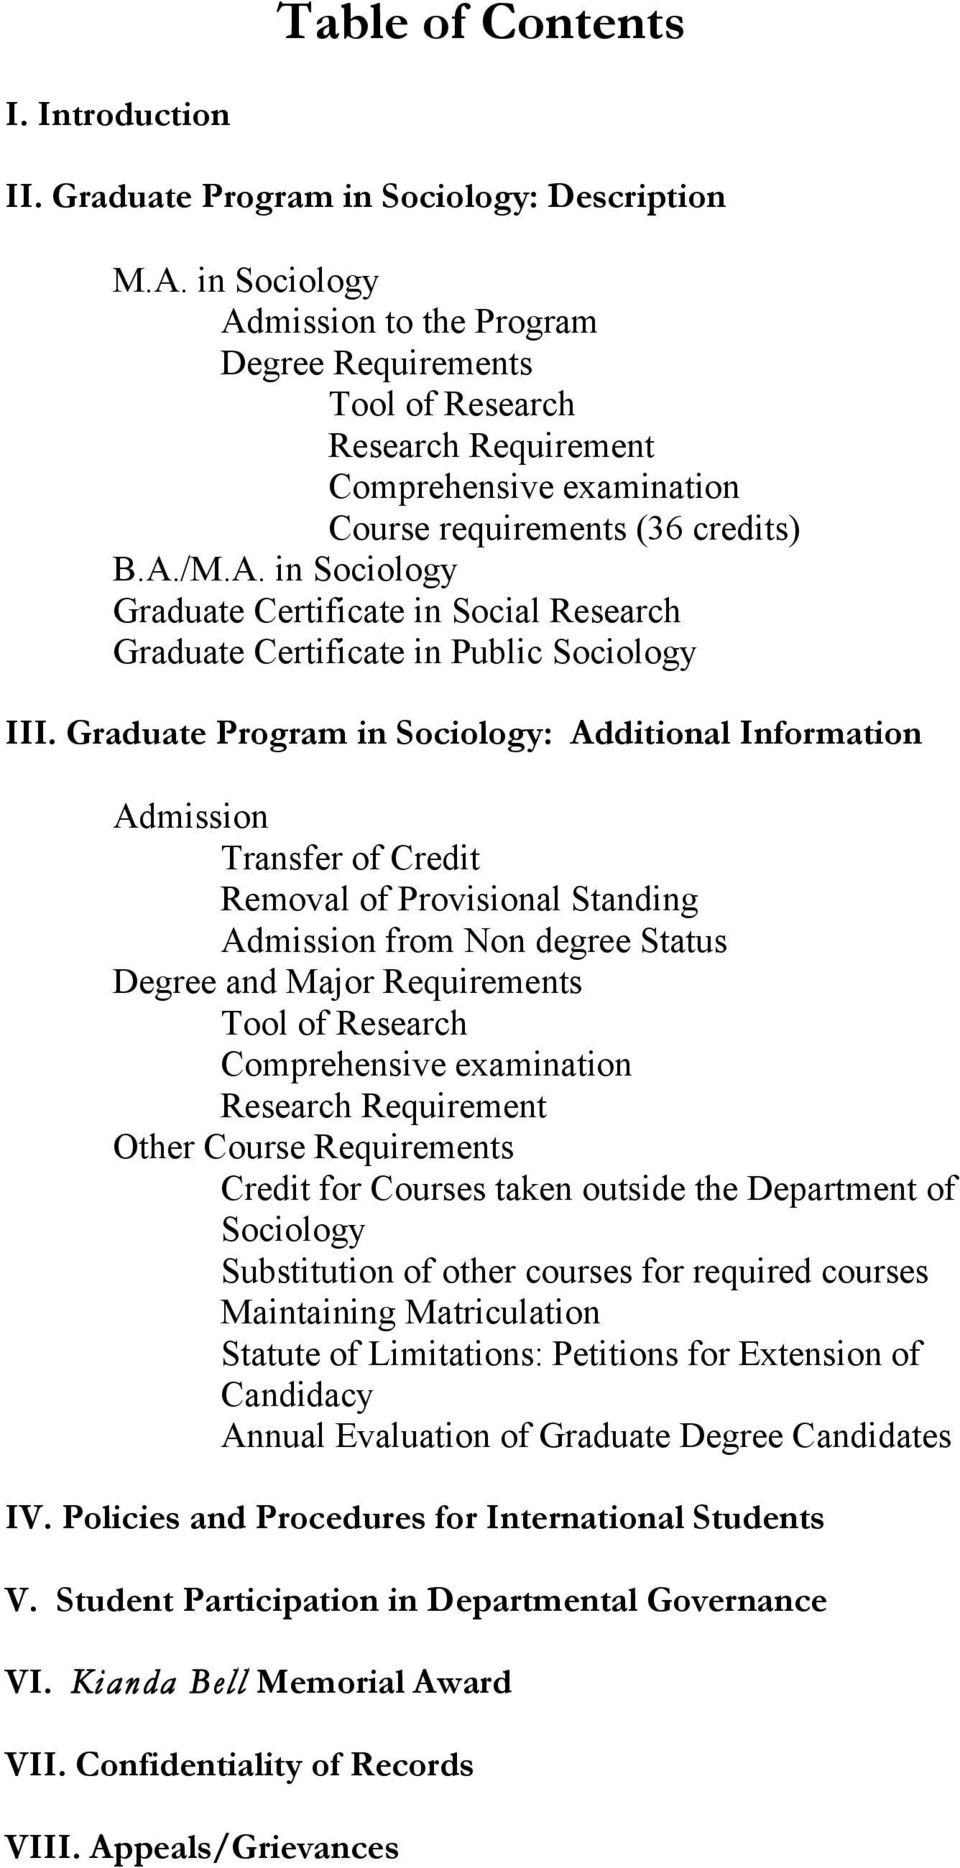 Graduate Program in Sociology: Additional Information Admission Transfer of Credit Removal of Provisional Standing Admission from Non degree Status Degree and Major Requirements Tool of Research